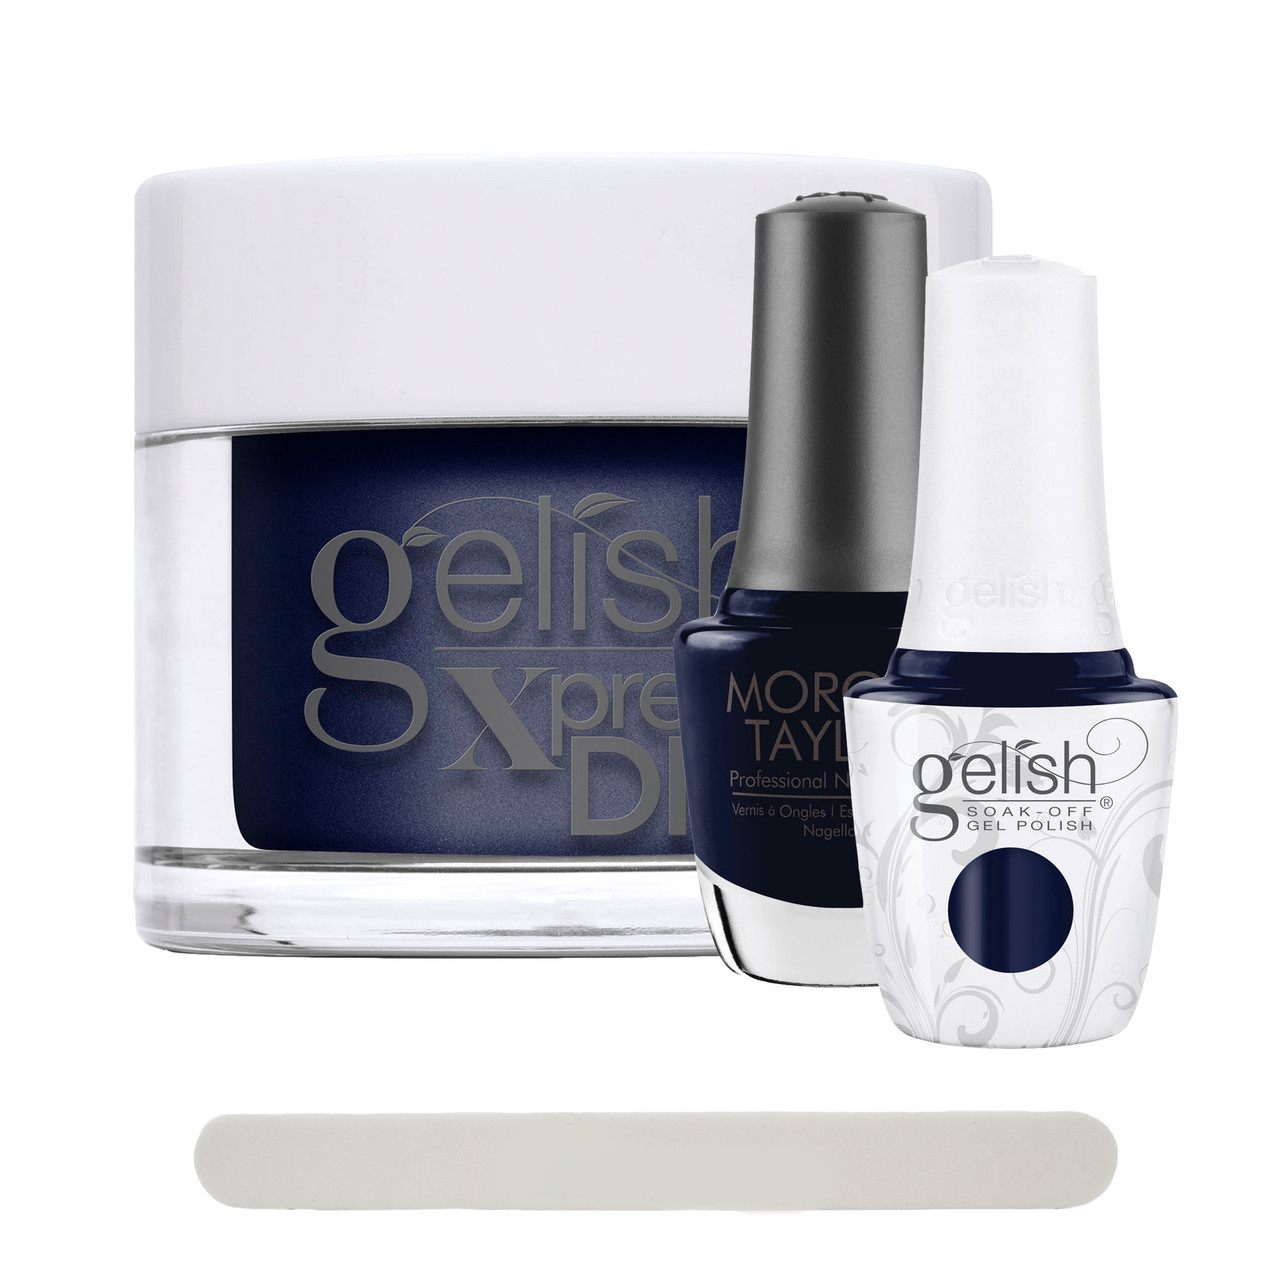 """Gelish """"Laying Low"""" 3 pc. Trio - Soak Off Gel Polish, Lacquer, and Dip - Rich Navy Blue Creme"""